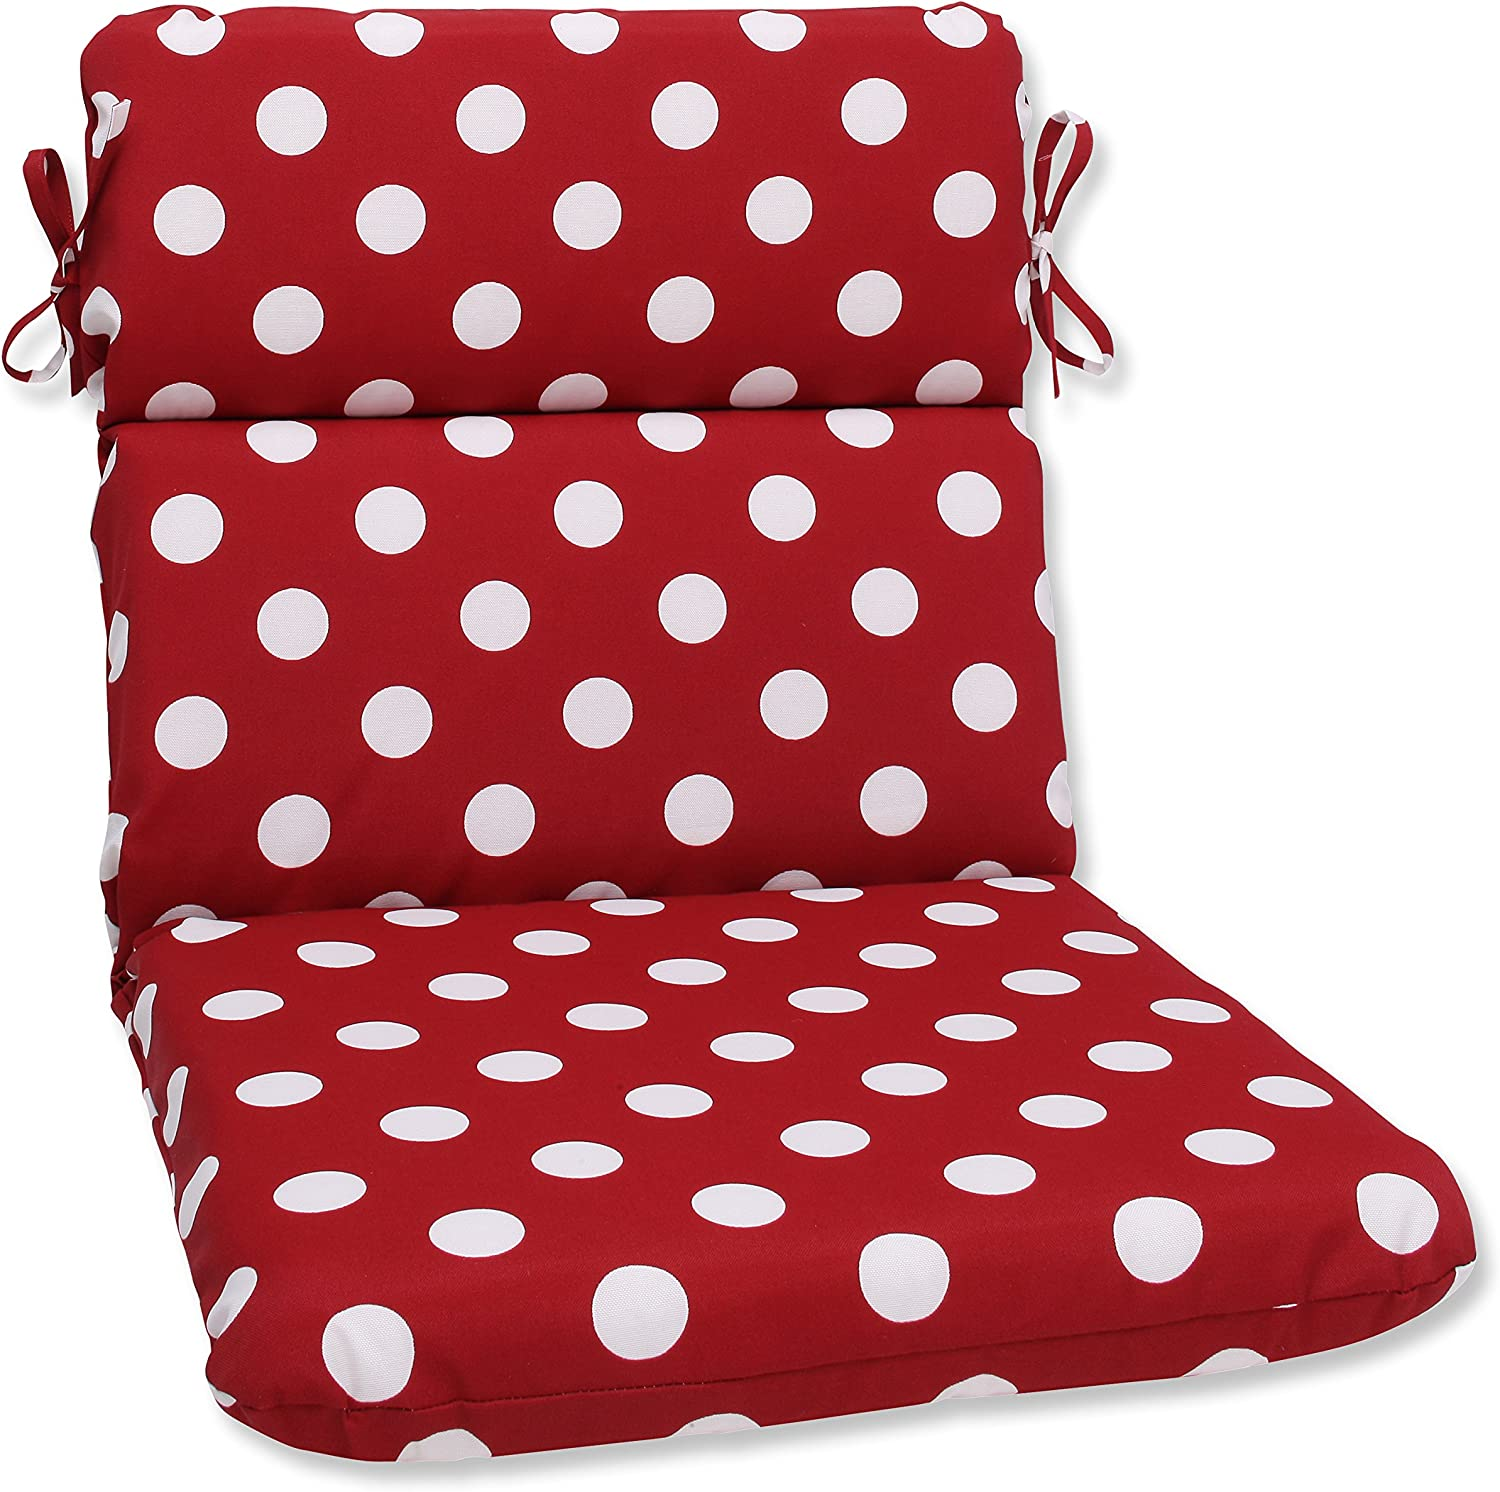 "Pillow Perfect Outdoor/Indoor Polka Dot Round Corner Chair Cushion, 40.5"" x 21"", Red"